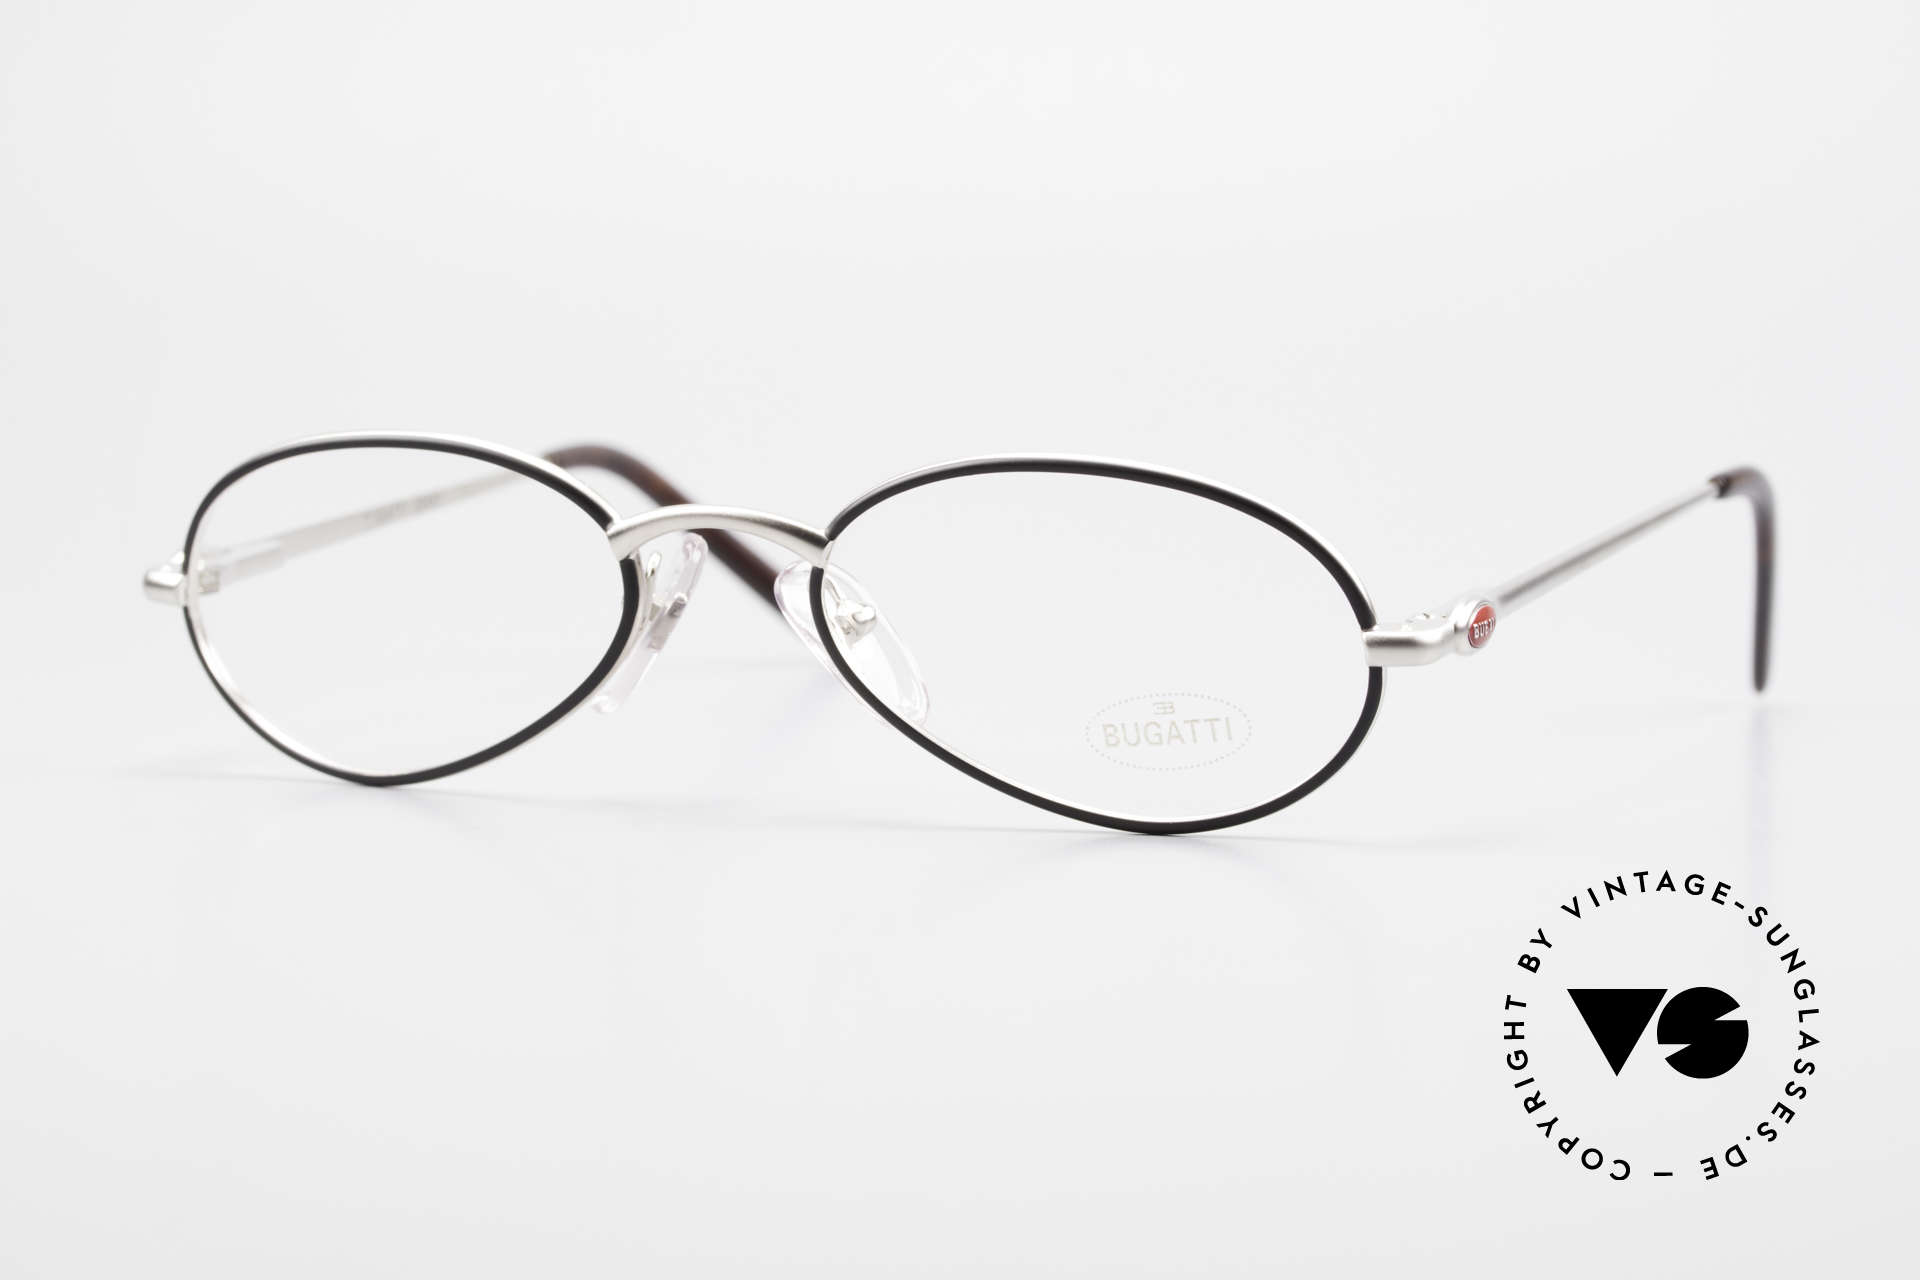 Bugatti 22431 Small 90's Vintage Eyeglasses, elegant vintage designer eyeglass-frame by BUGATTI, Made for Men and Women